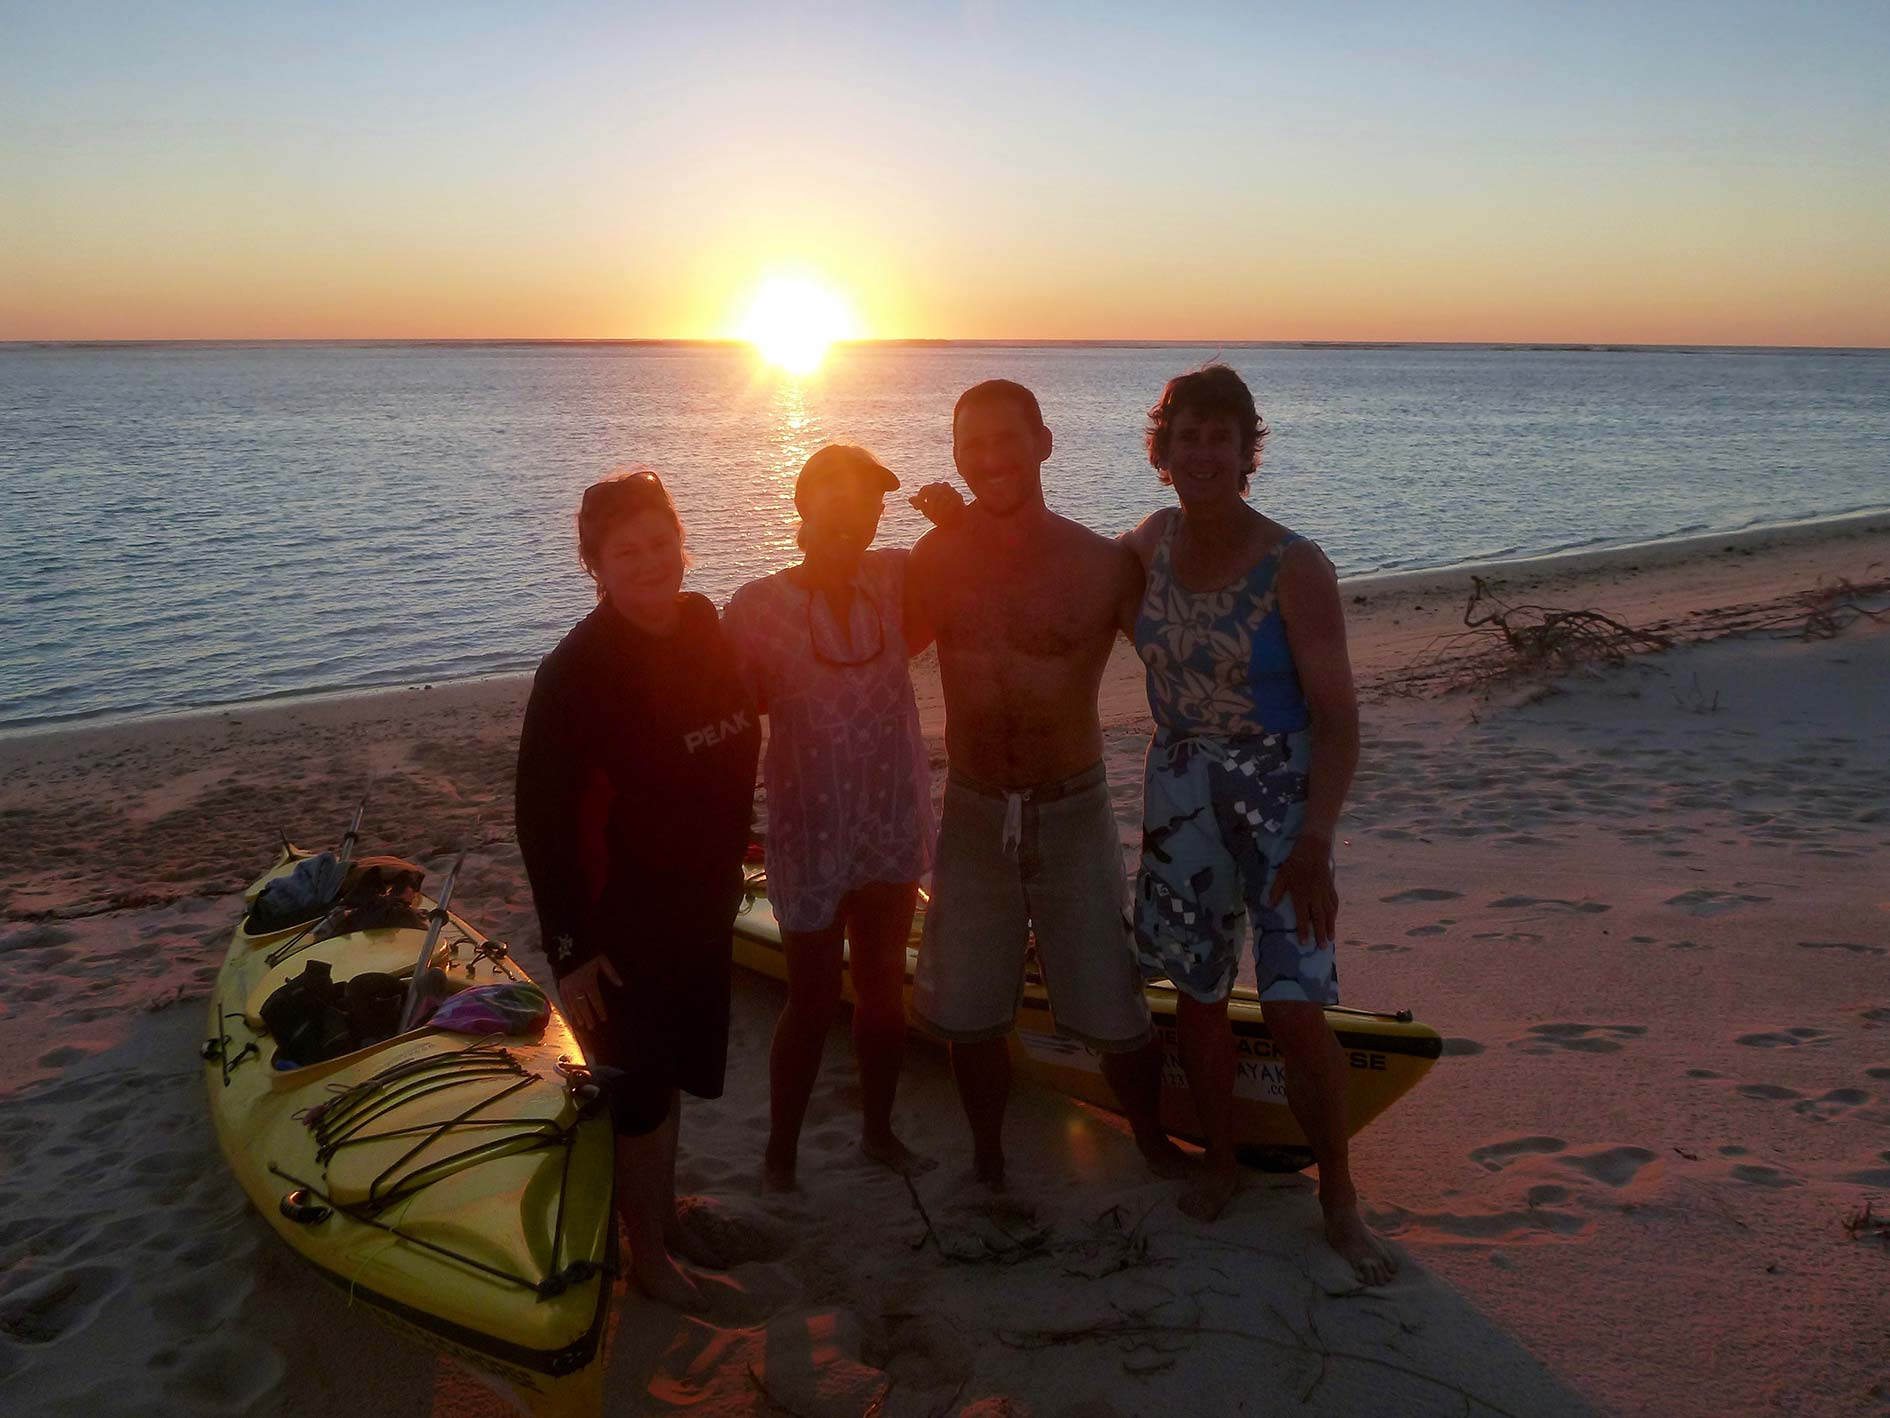 Join Our Team, worth with us, exmouth adventure co, Exmouth, Western Australia, Ningaloo Reef, sea kayak, snorkel, camp, bush walk, SUP, surf, Learn to surf, sea kayak guide, kayak guide, surf coach, surf instructor, SUP instructor, snorkel guide